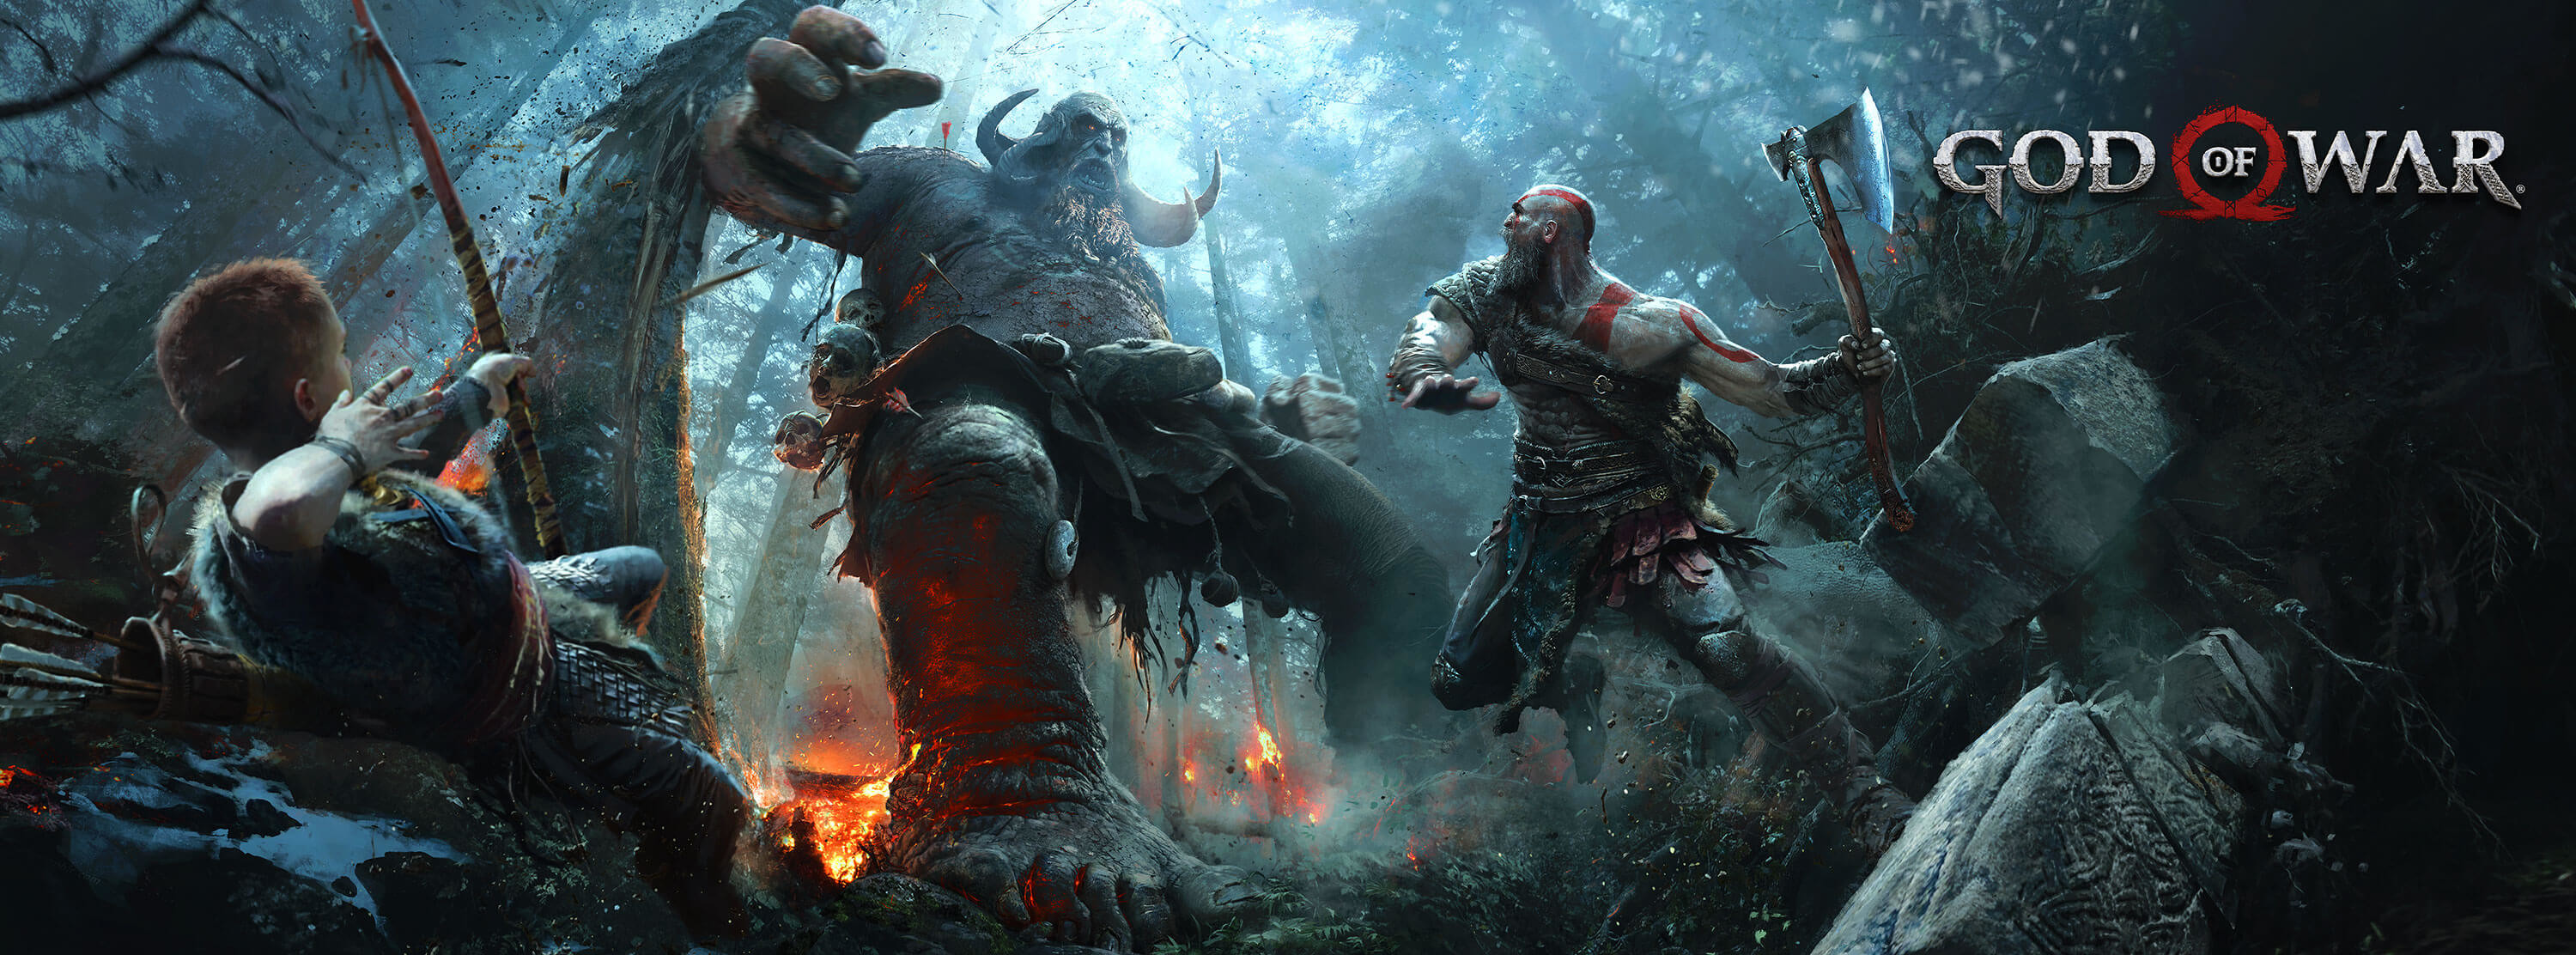 god of war hd wallpapers (86+ background pictures)